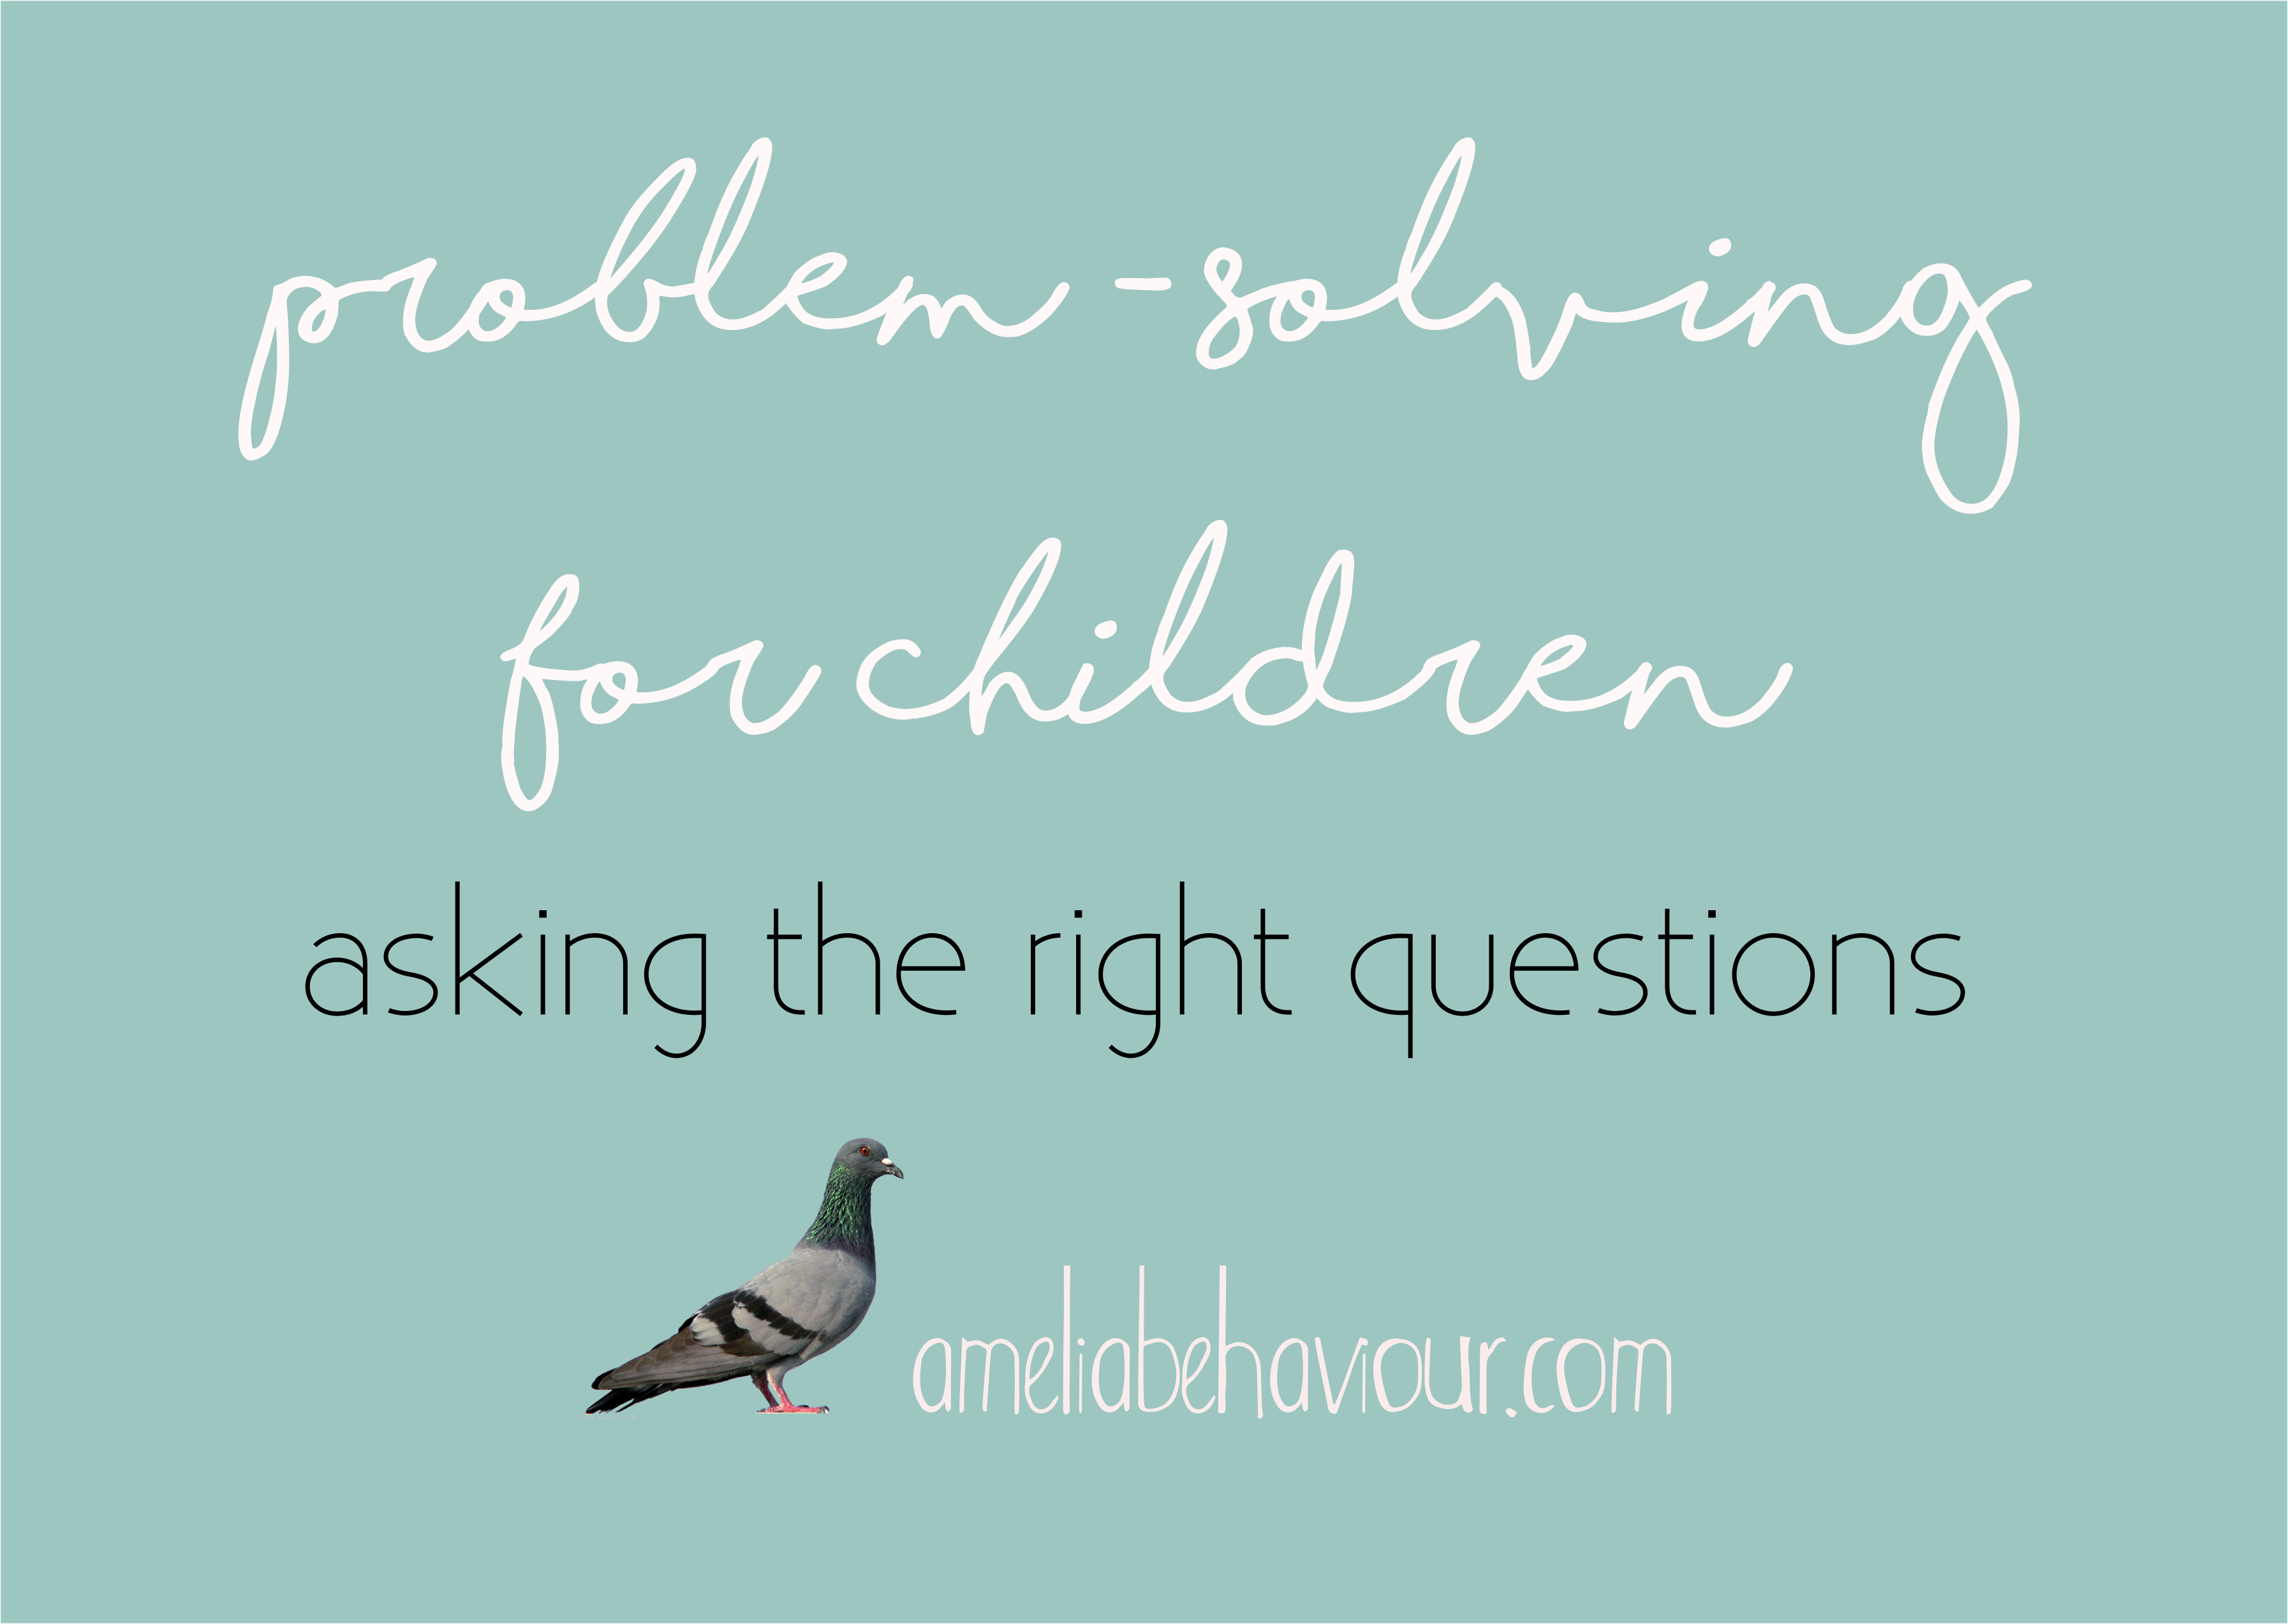 Problem-solving for children: asking the right questions